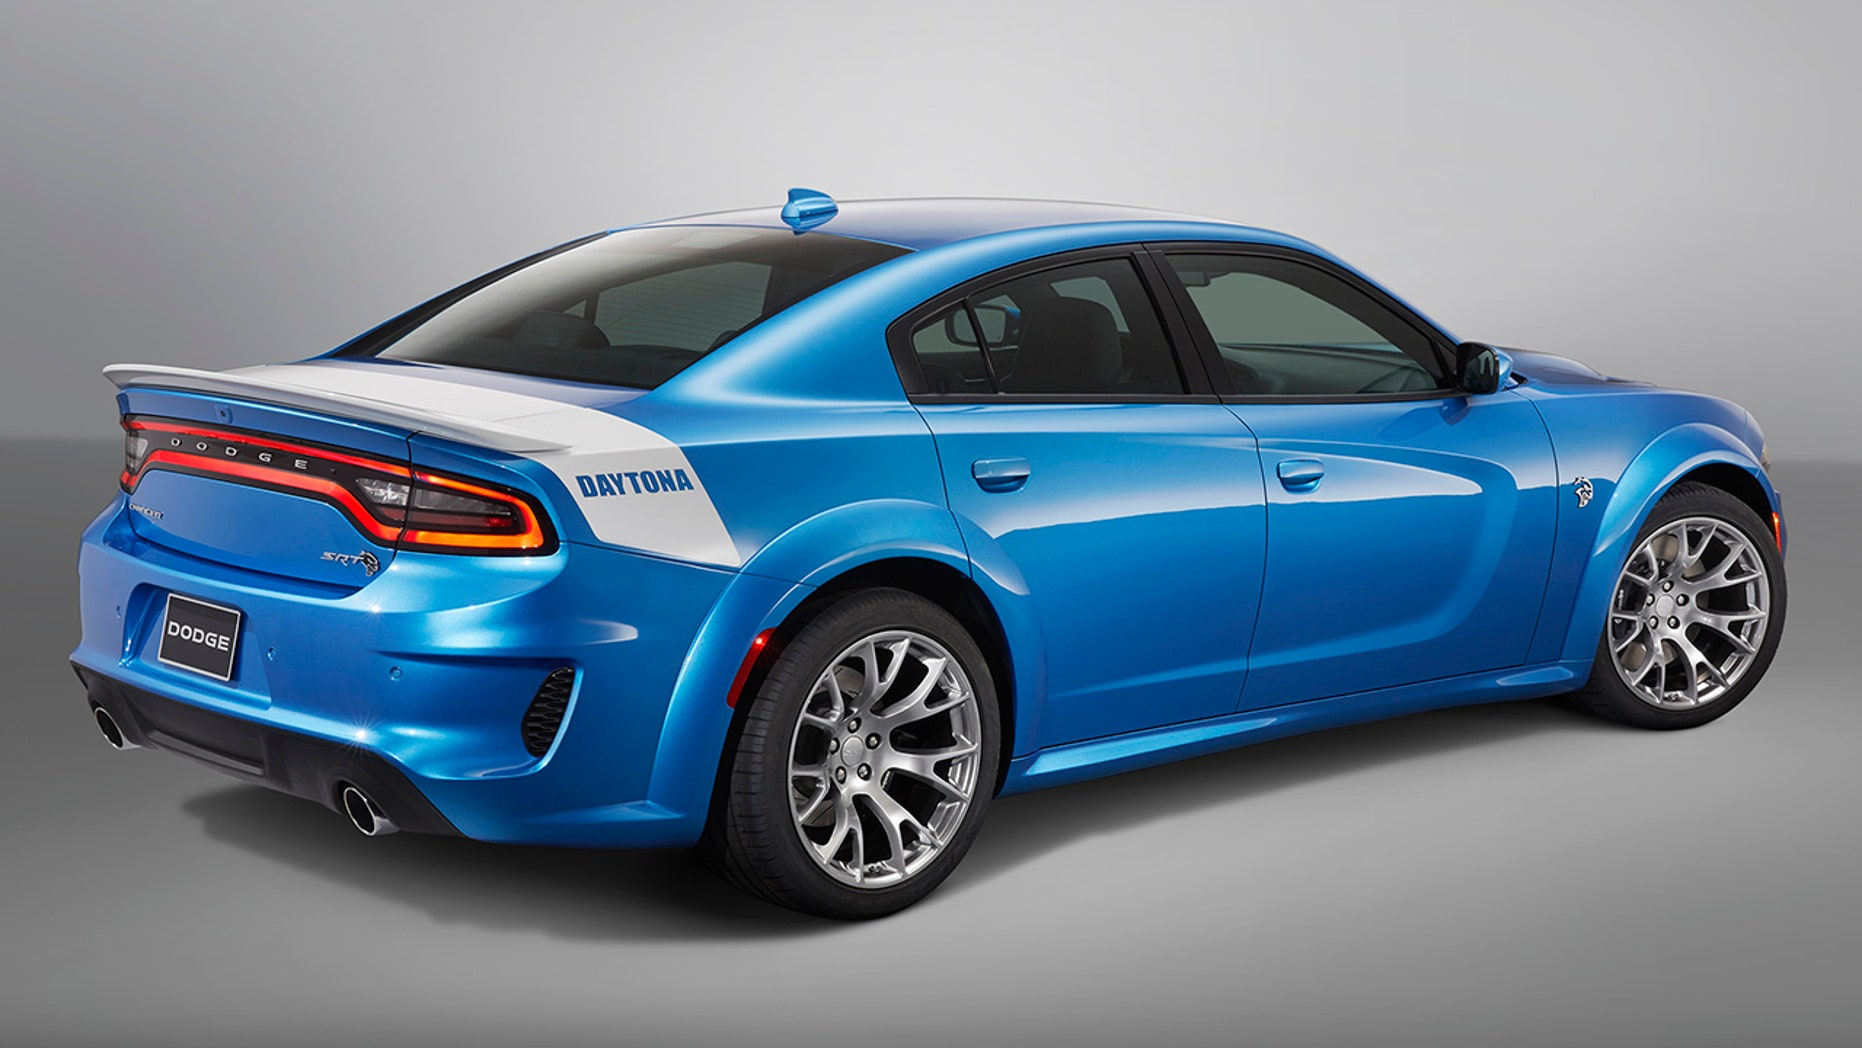 2020 Dodge Charger SRT Hellcat Widebody Daytona 50th Anniversary Edition rear view